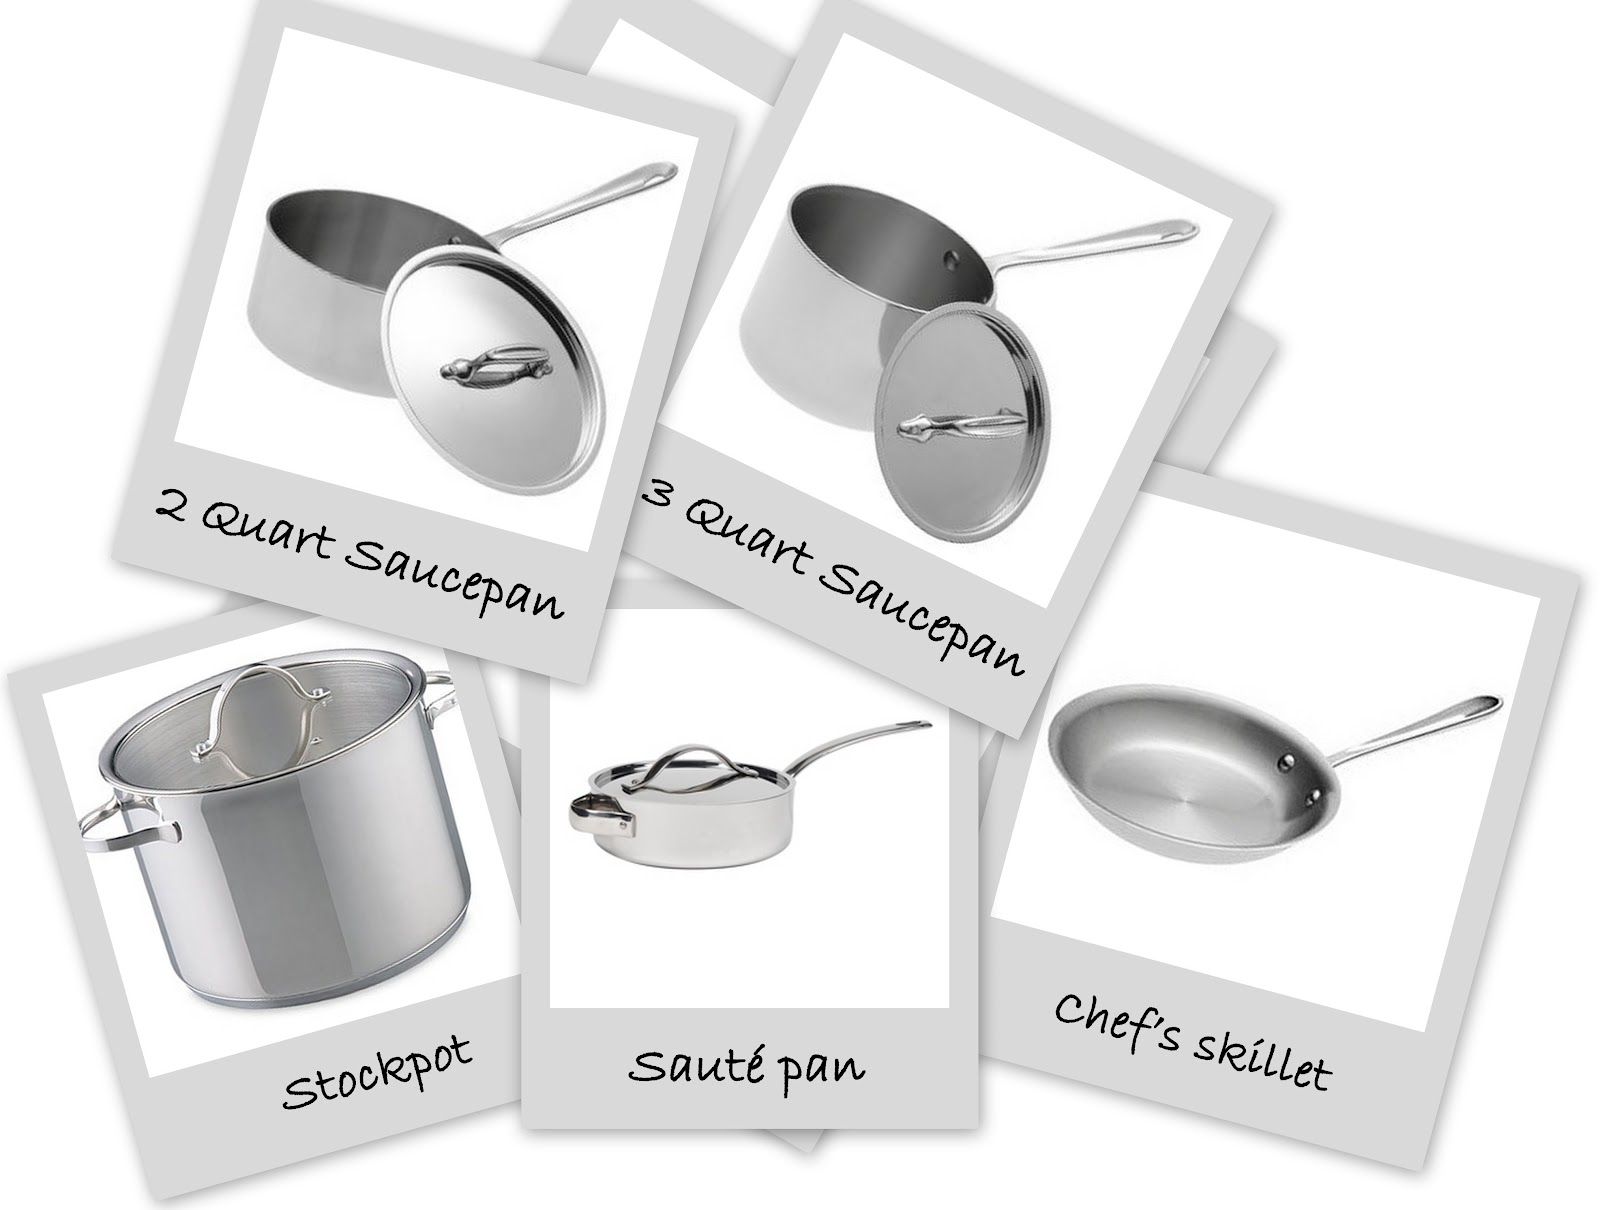 Kitchen utensils list with pictures and uses - Basic To Advanced Cooking Equipment